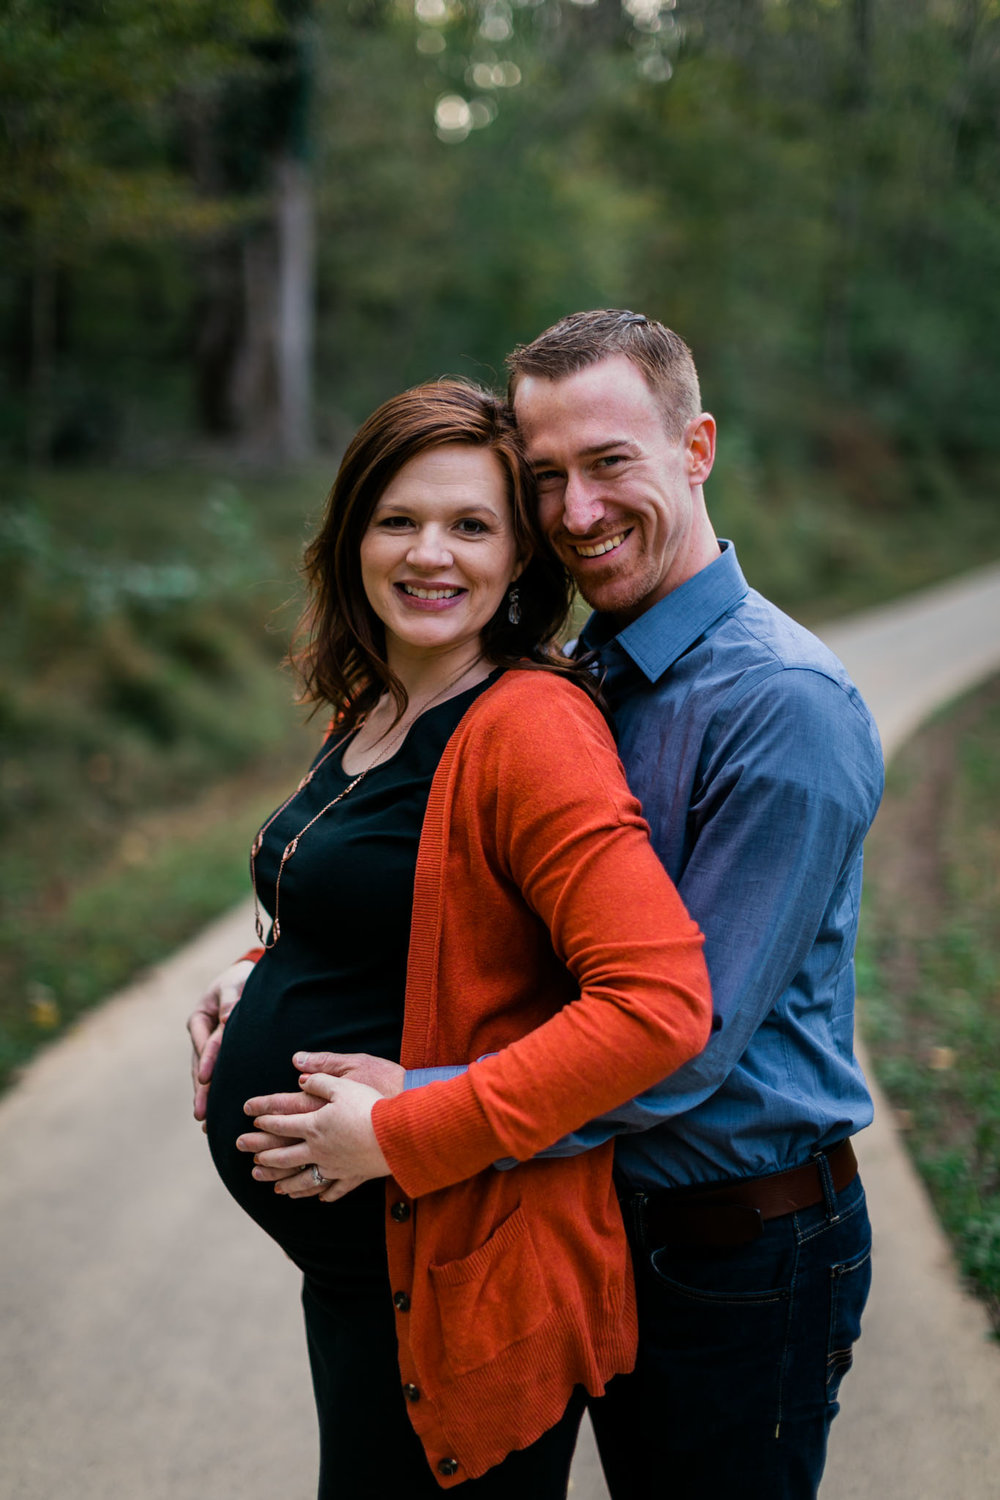 Maternity portrait at Hillsborough Riverwalk | Durham Maternity Photographer | By G. Lin Photography